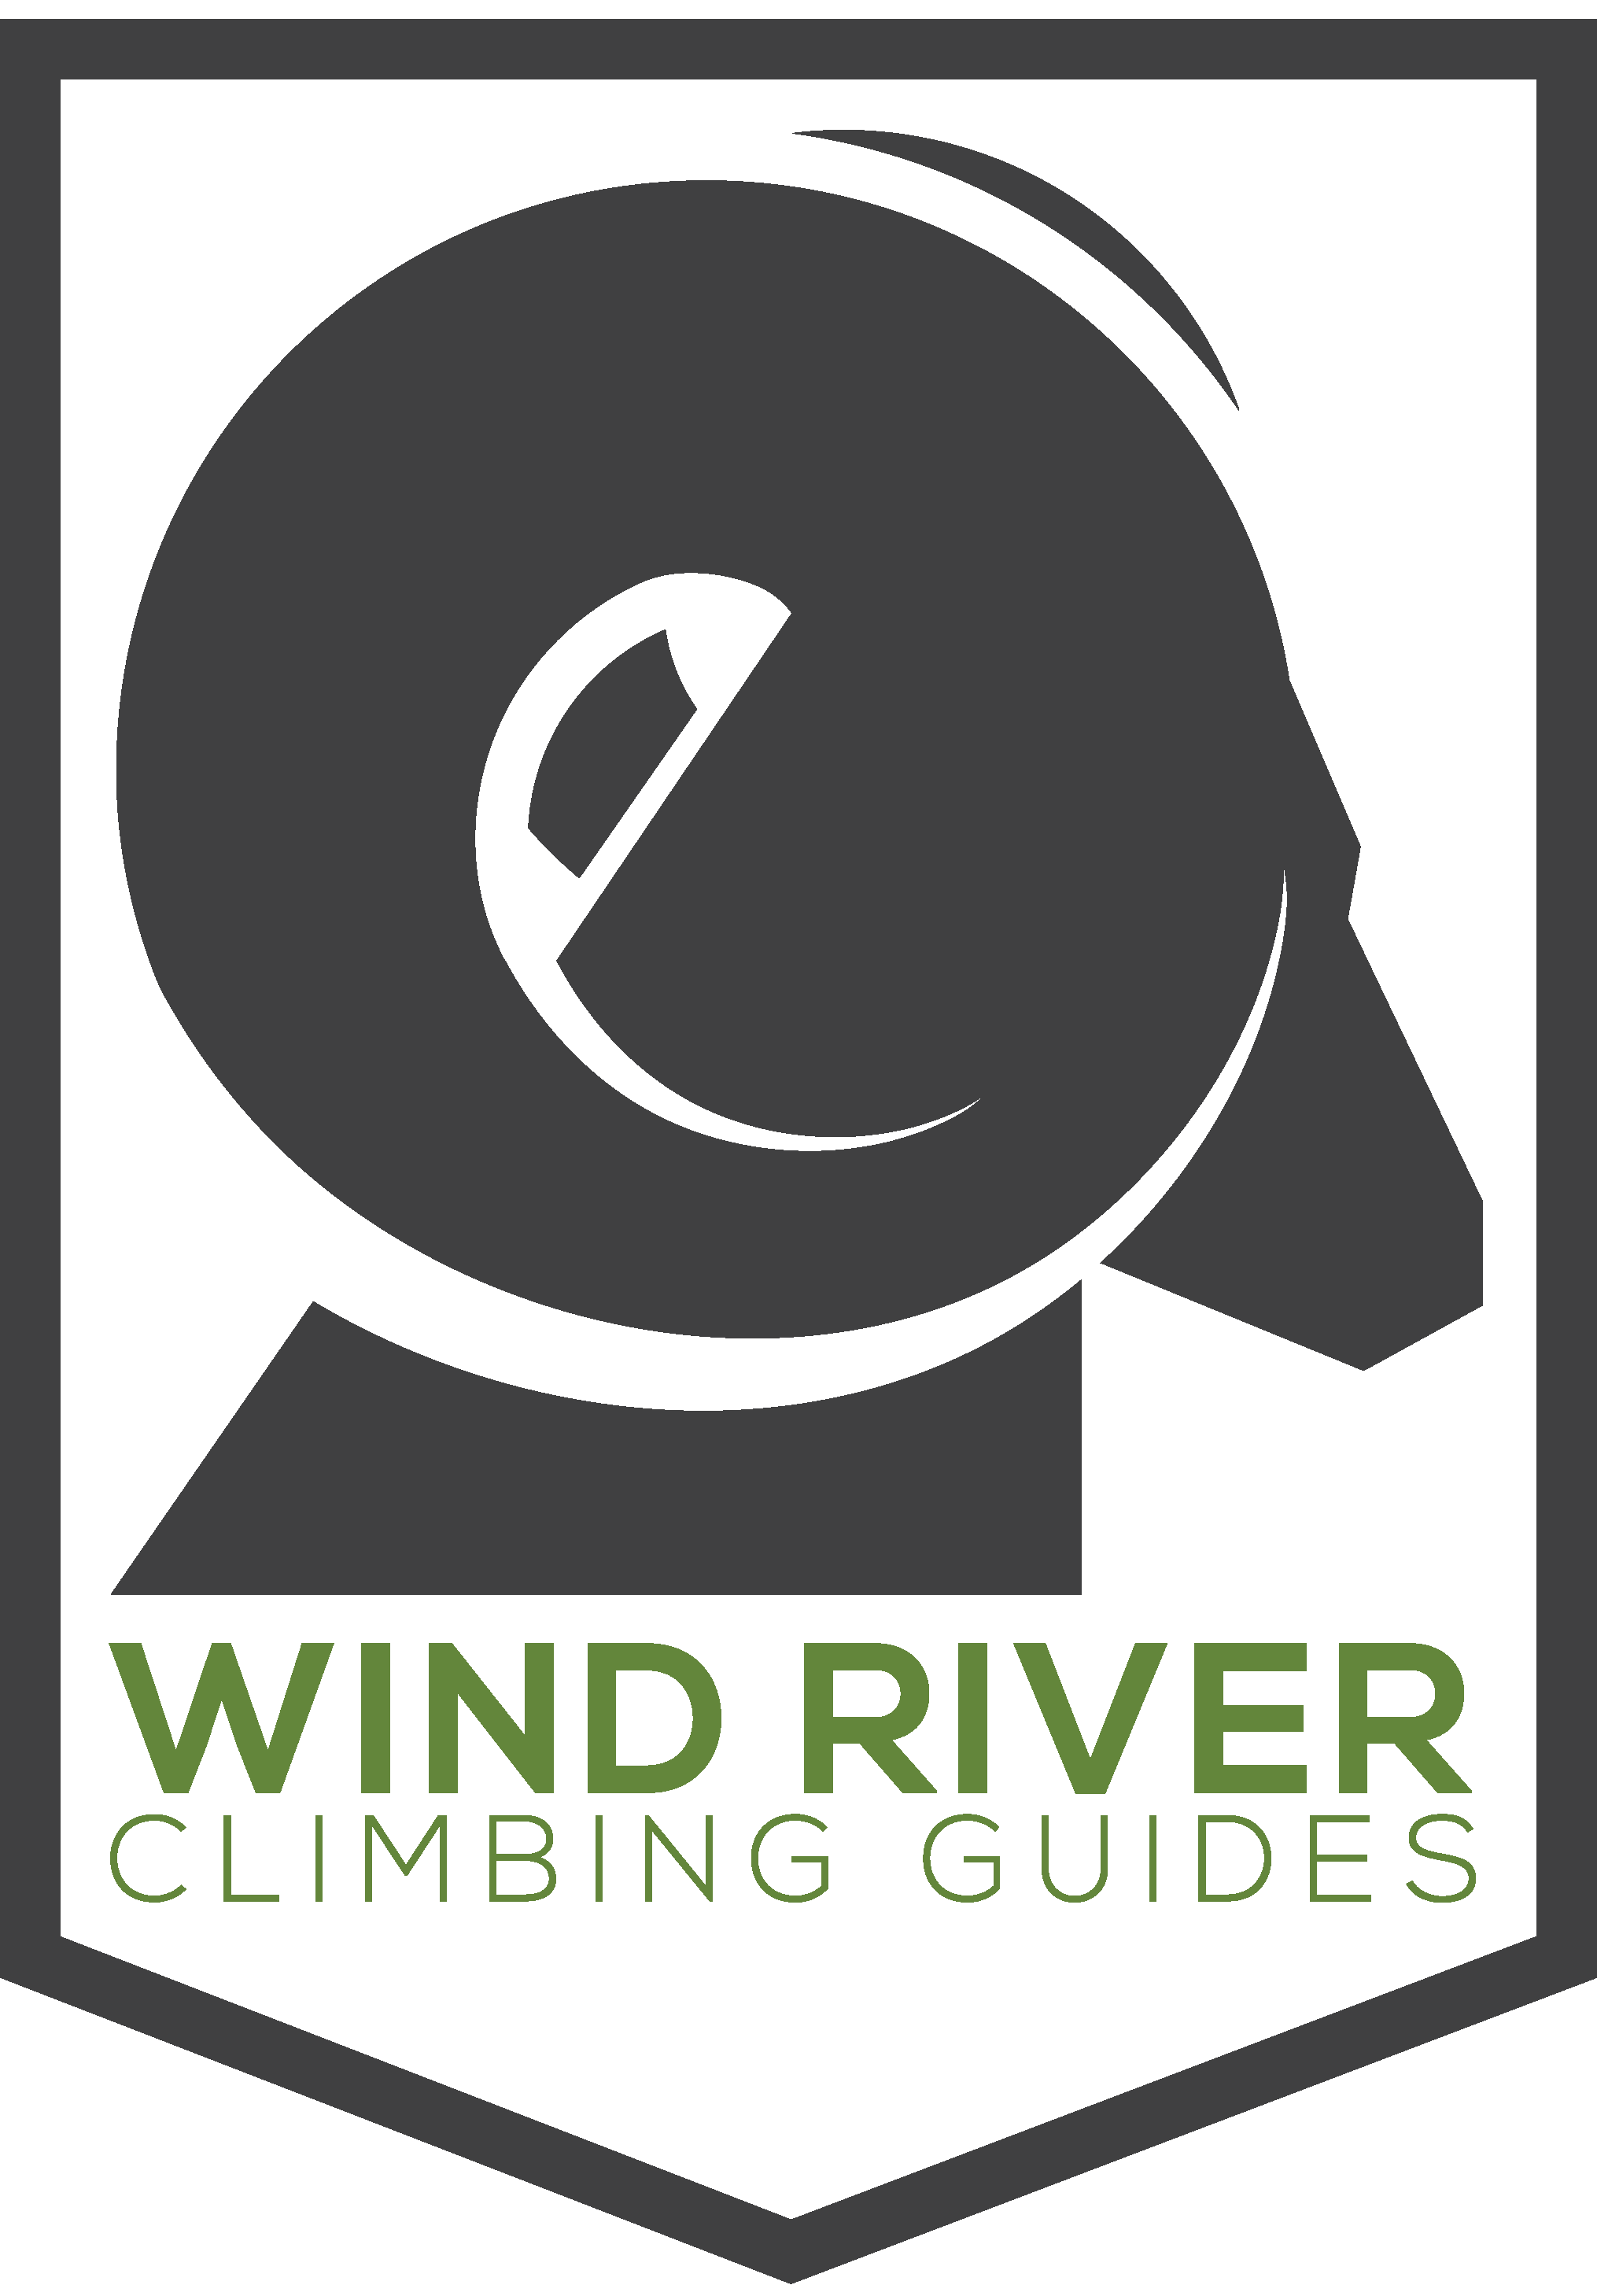 - Wind River Climbing Guides provides private and customizable climbing adventures near Lander, WY that are shaped to meet client expectations and goals. During the festival, they offer two free clinics for the local community and work with Wyoclimbers throughout the year to fulfill the organization's education mission.